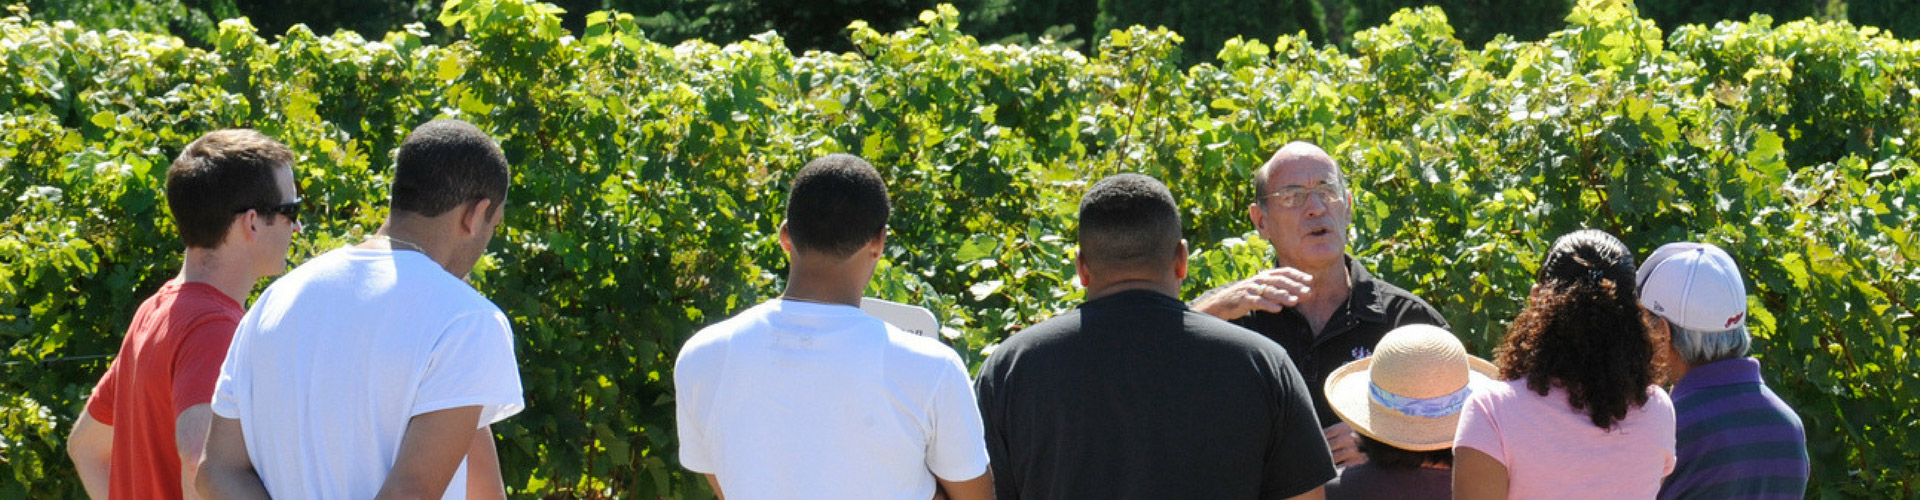 People in vineyard